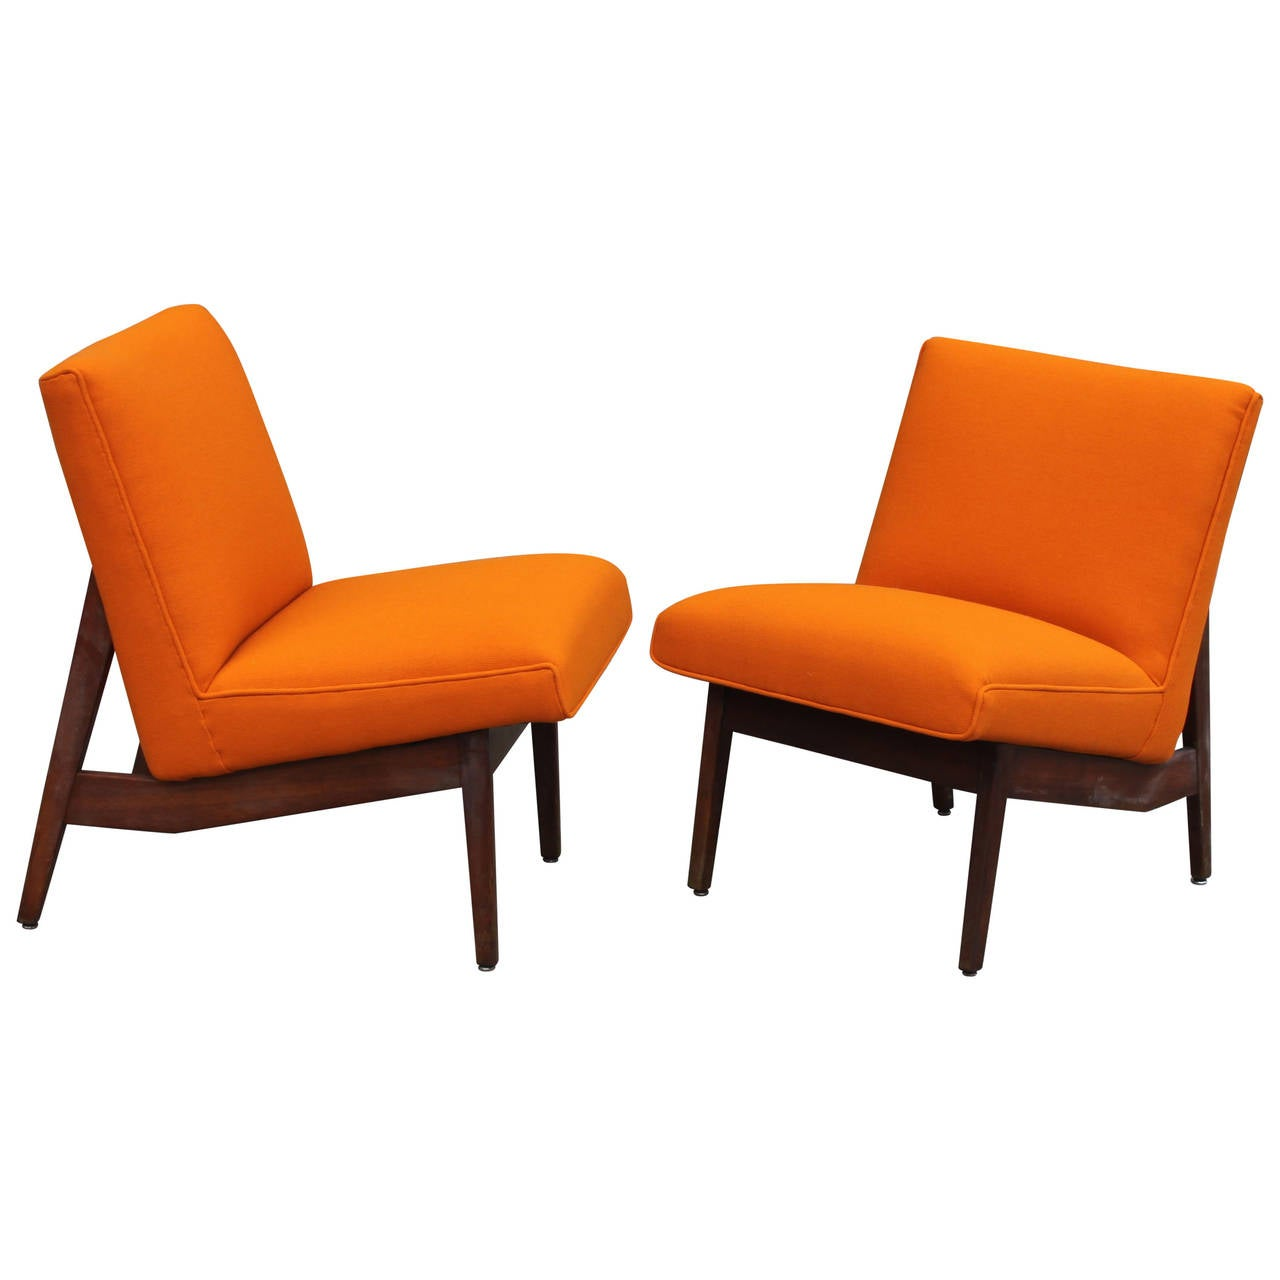 Pair of vintage gunlocke lounge chairs for sale at 1stdibs